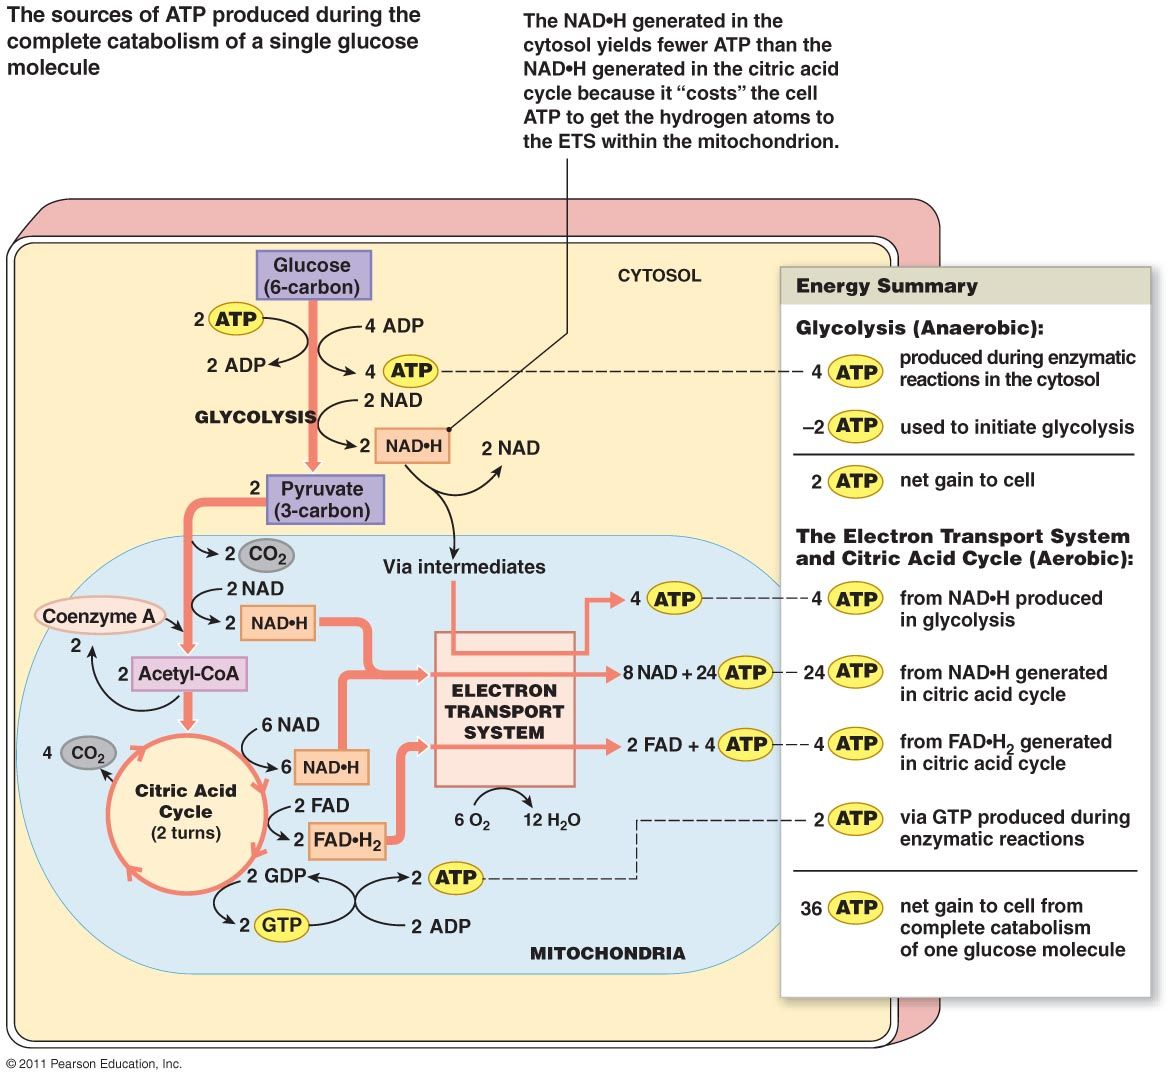 glucose metabolism diagram glucose metabolism diagram find this pin and more on metabolic pathways by paul tags electron transport chain [ 1174 x 1080 Pixel ]